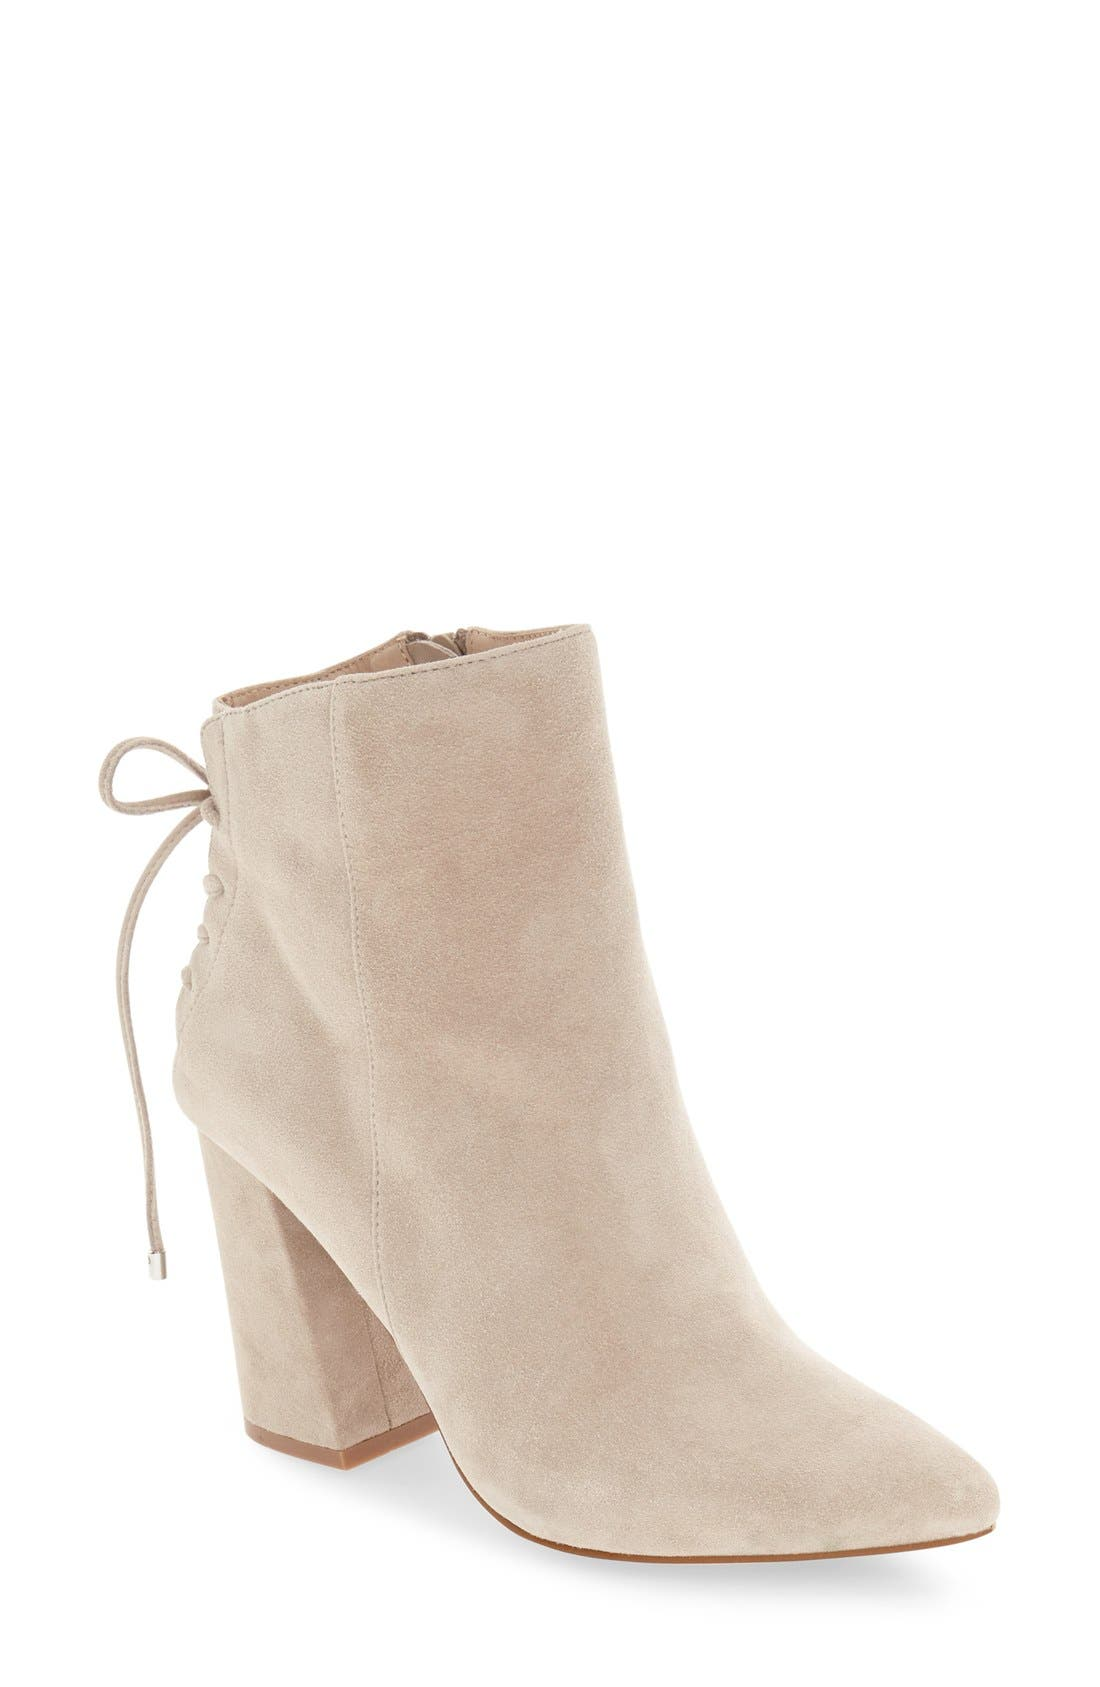 'Siren' Pointy Toe Bootie,                             Main thumbnail 2, color,